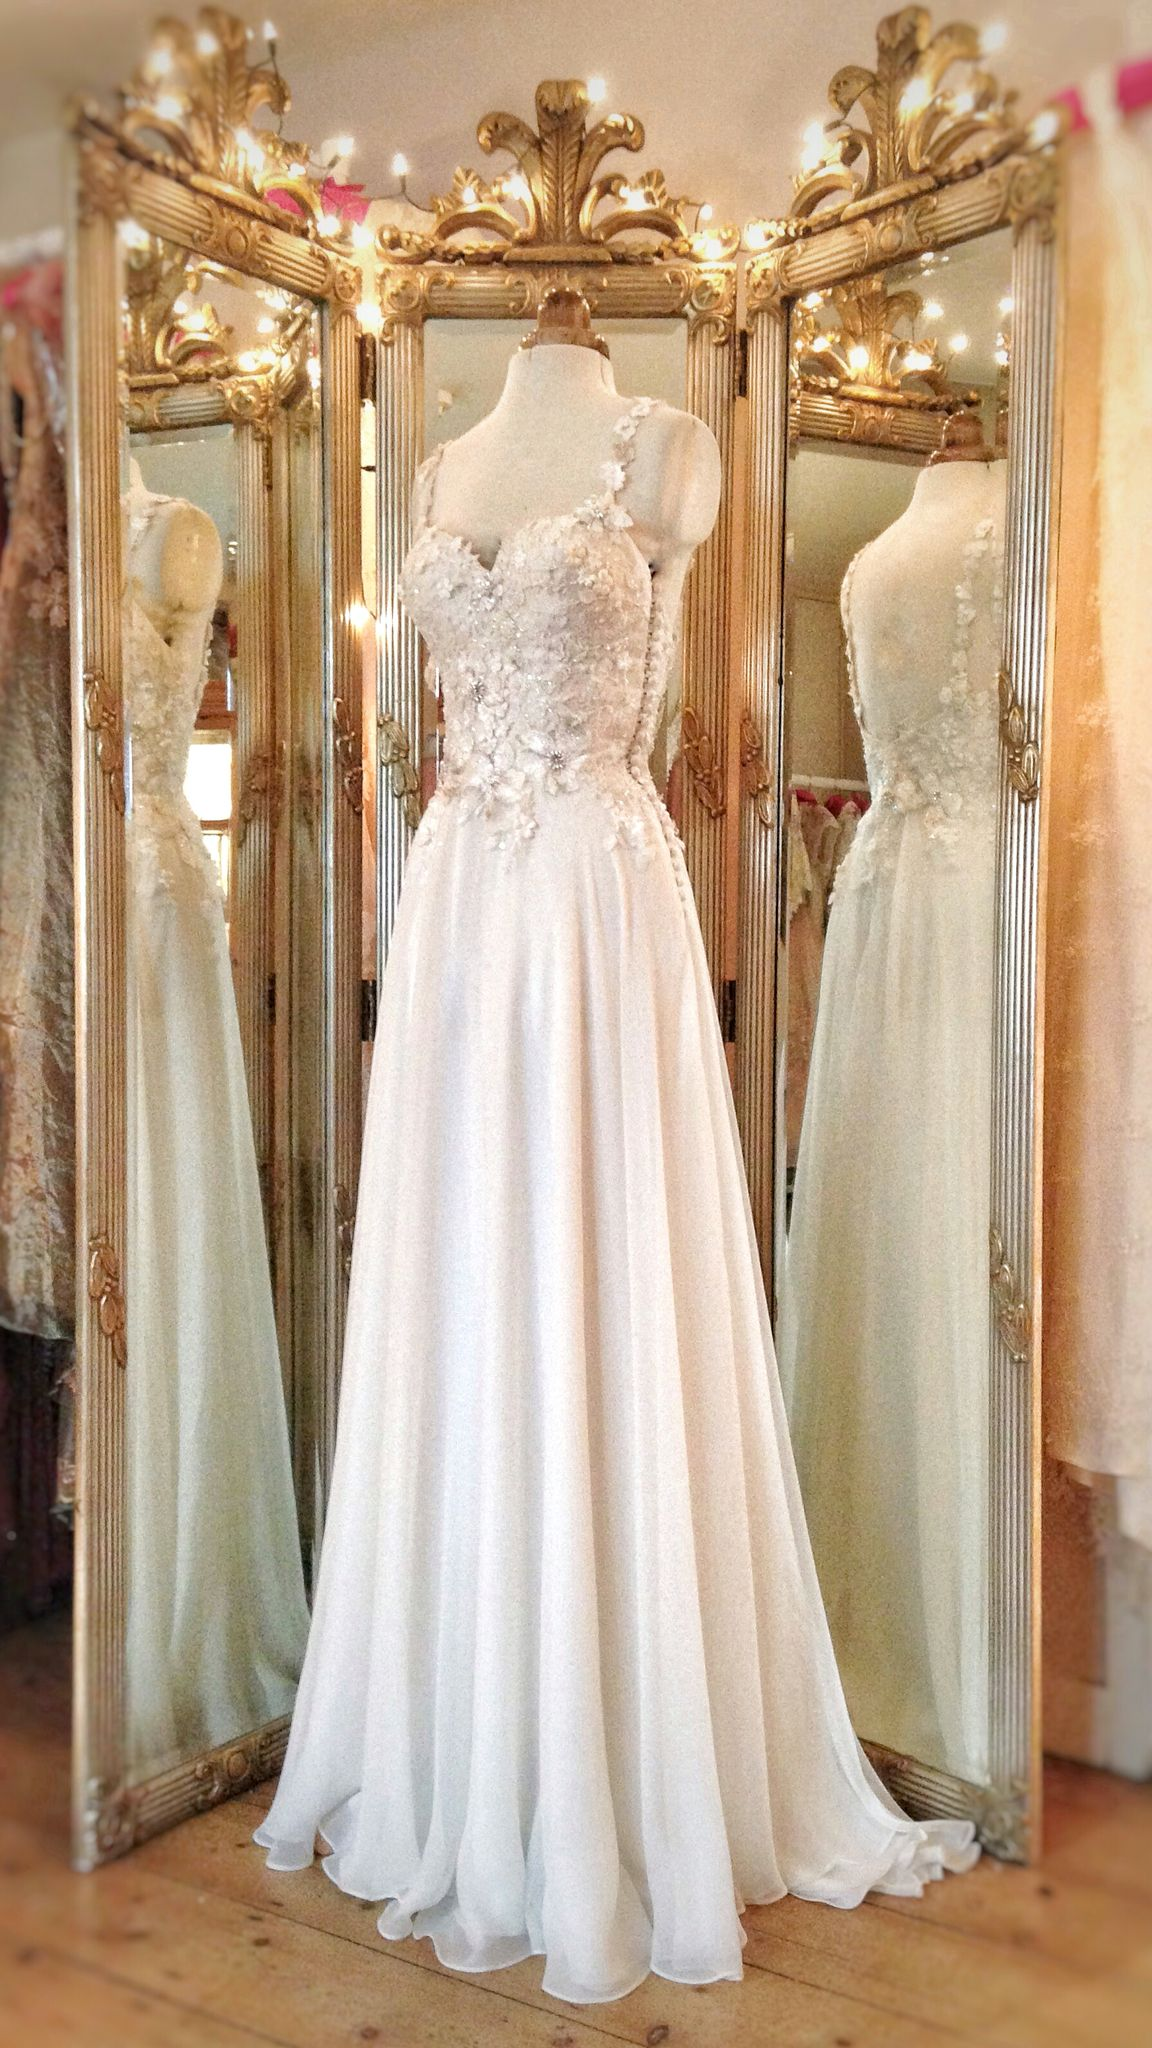 Althea Wedding Dress With Flower Embellished Bodice And Flowing Silk Chiffon Skirt